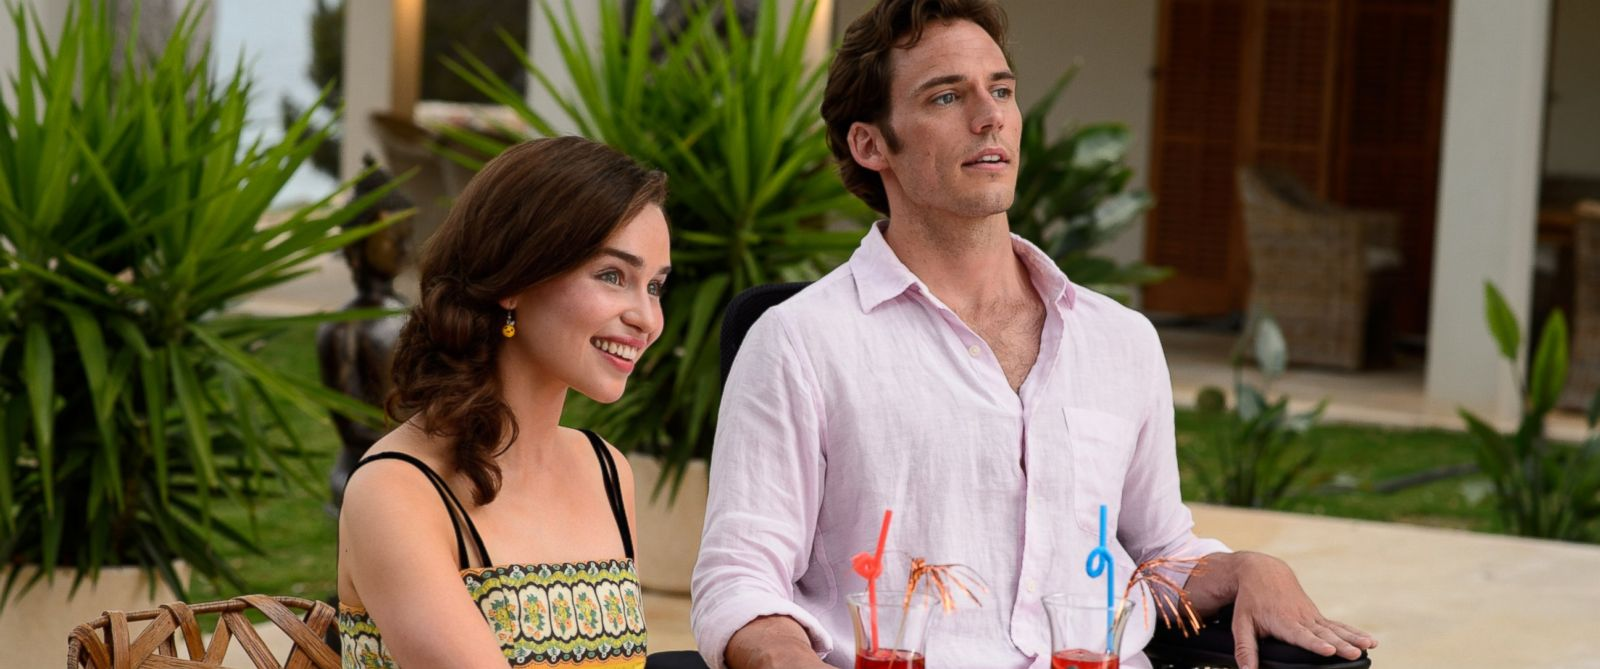 3e9515d930156 HT me before you mm 160603 12x5 1600. Emilia Clarke ...